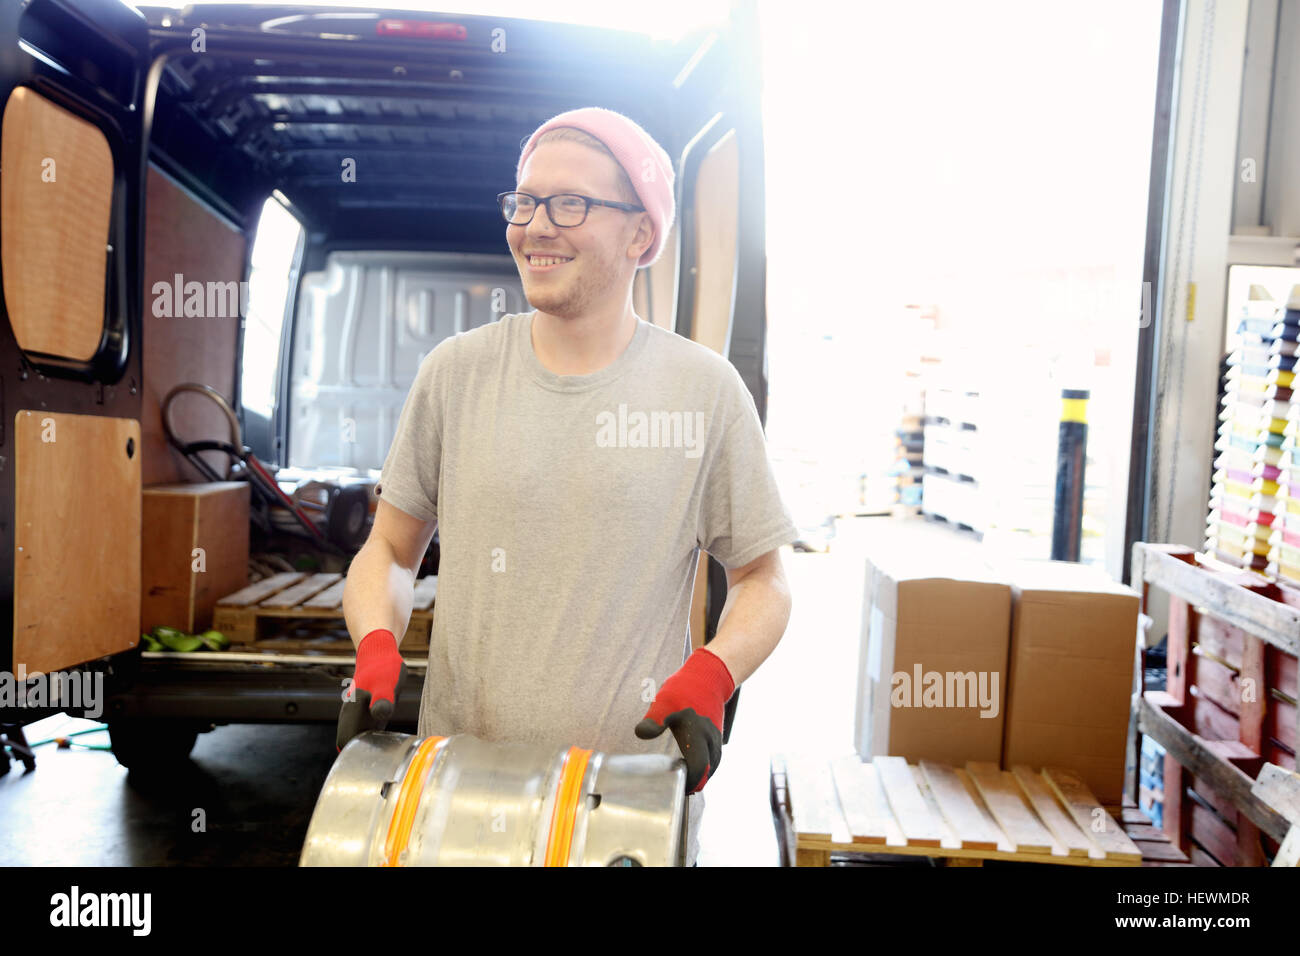 Worker in brewery, preparing to distribute barrels of beer - Stock Image